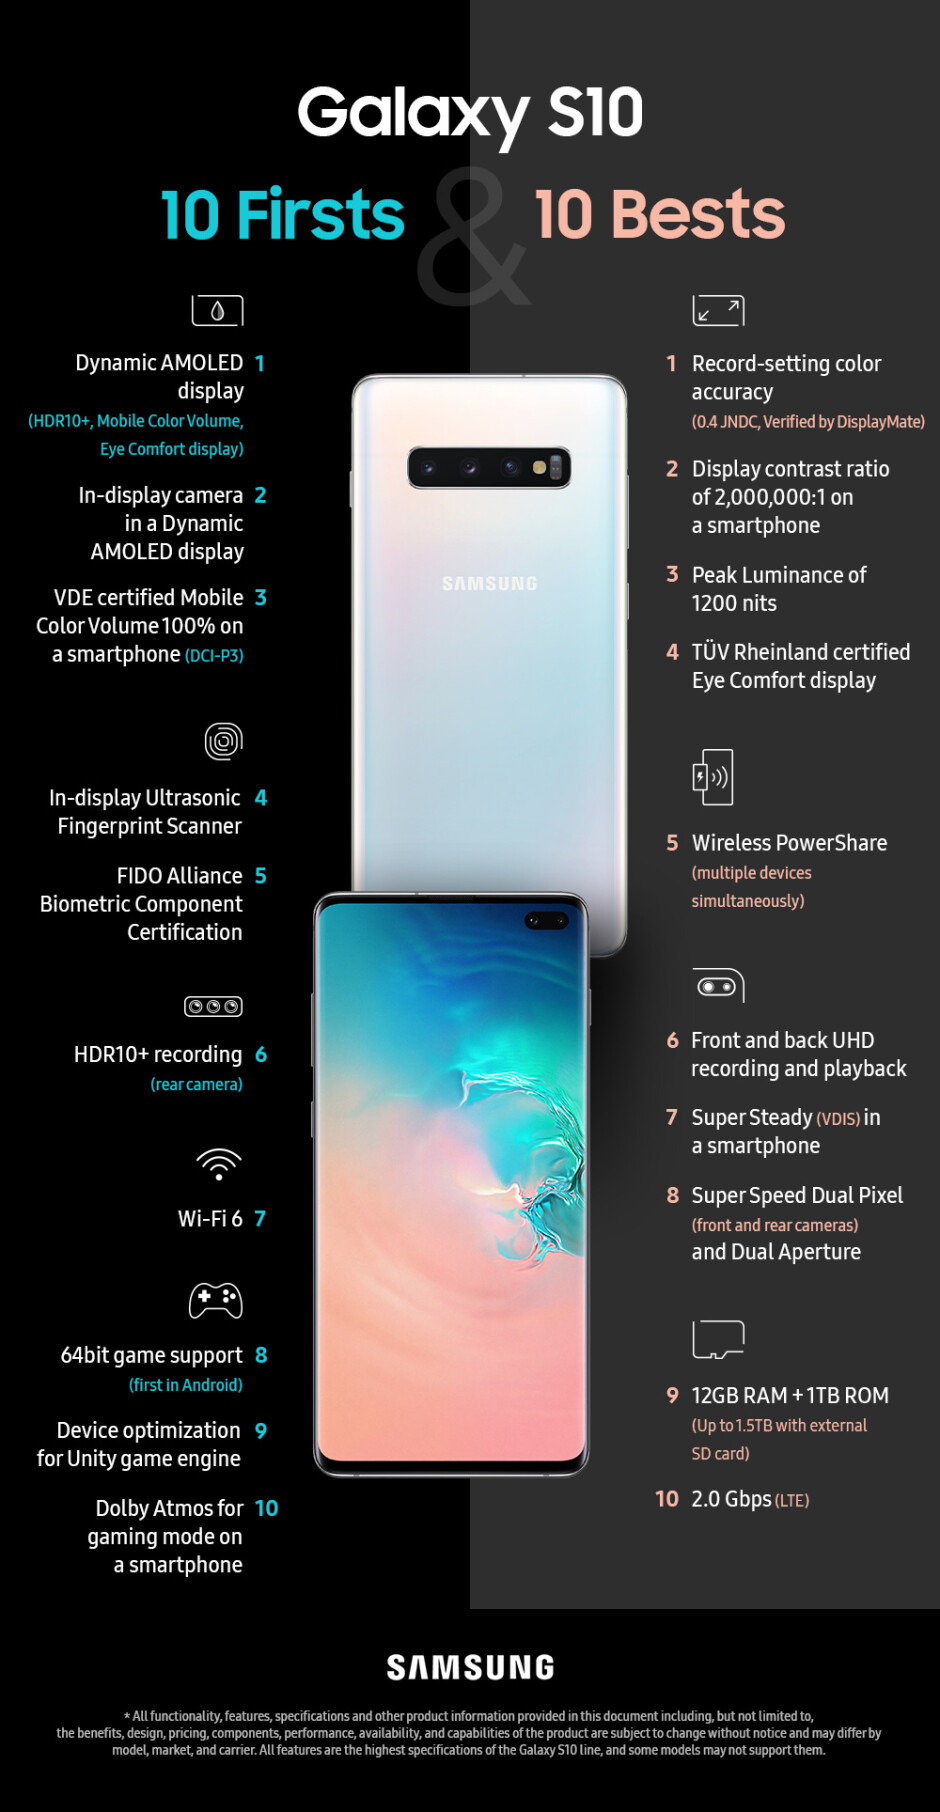 Samsung boasts Galaxy S10 achievements with infographic